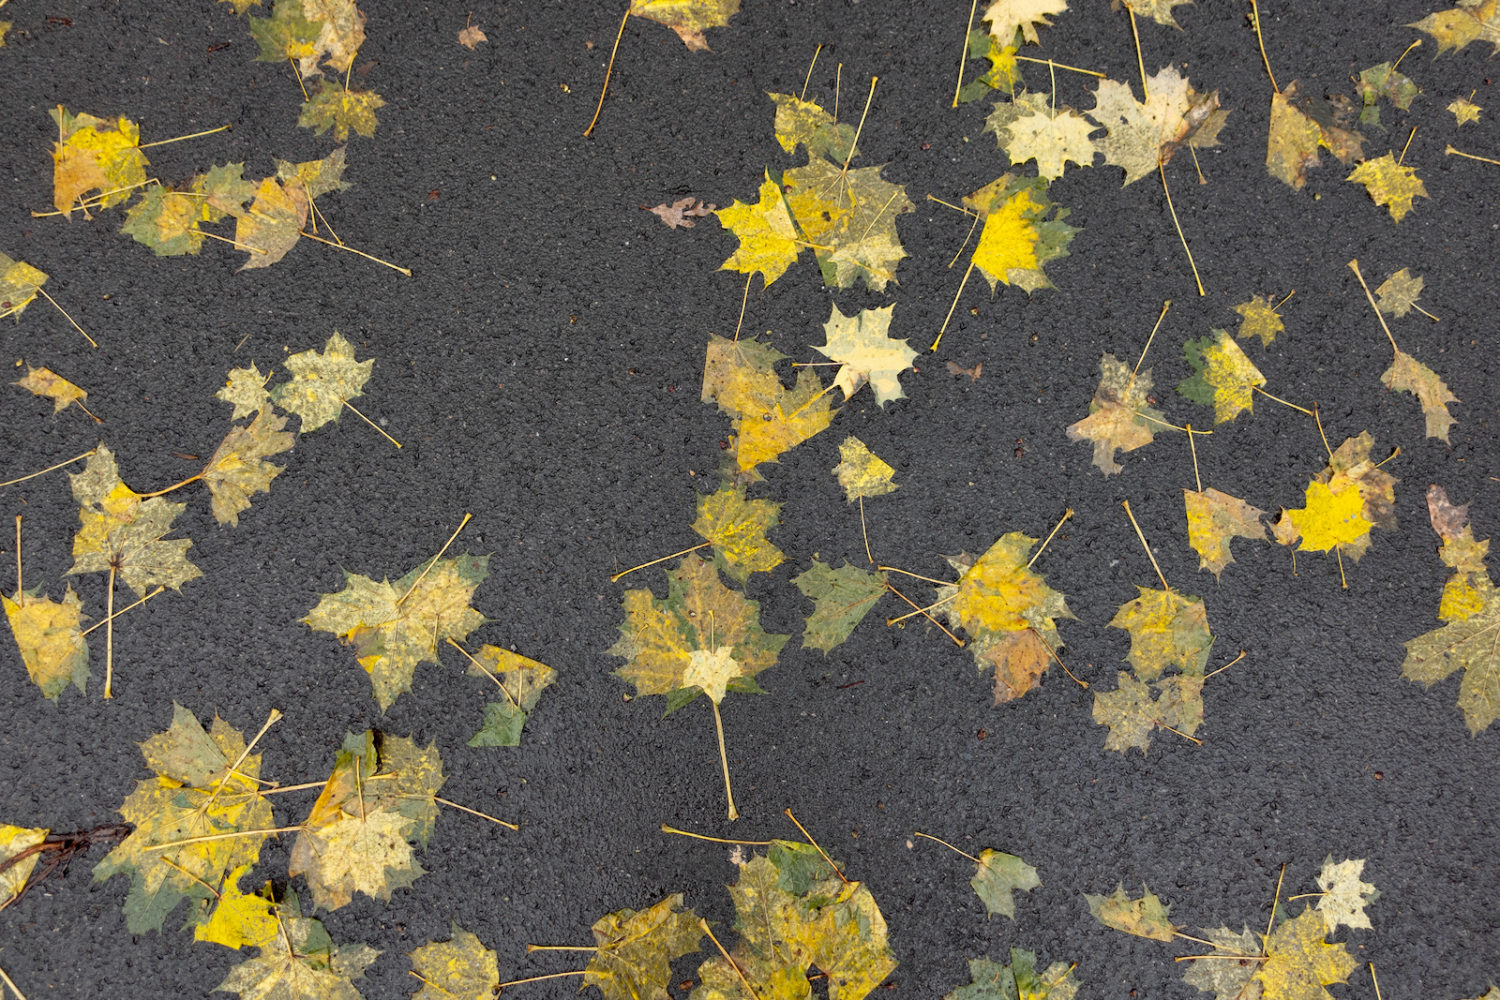 Flattened maple leaves on road out front